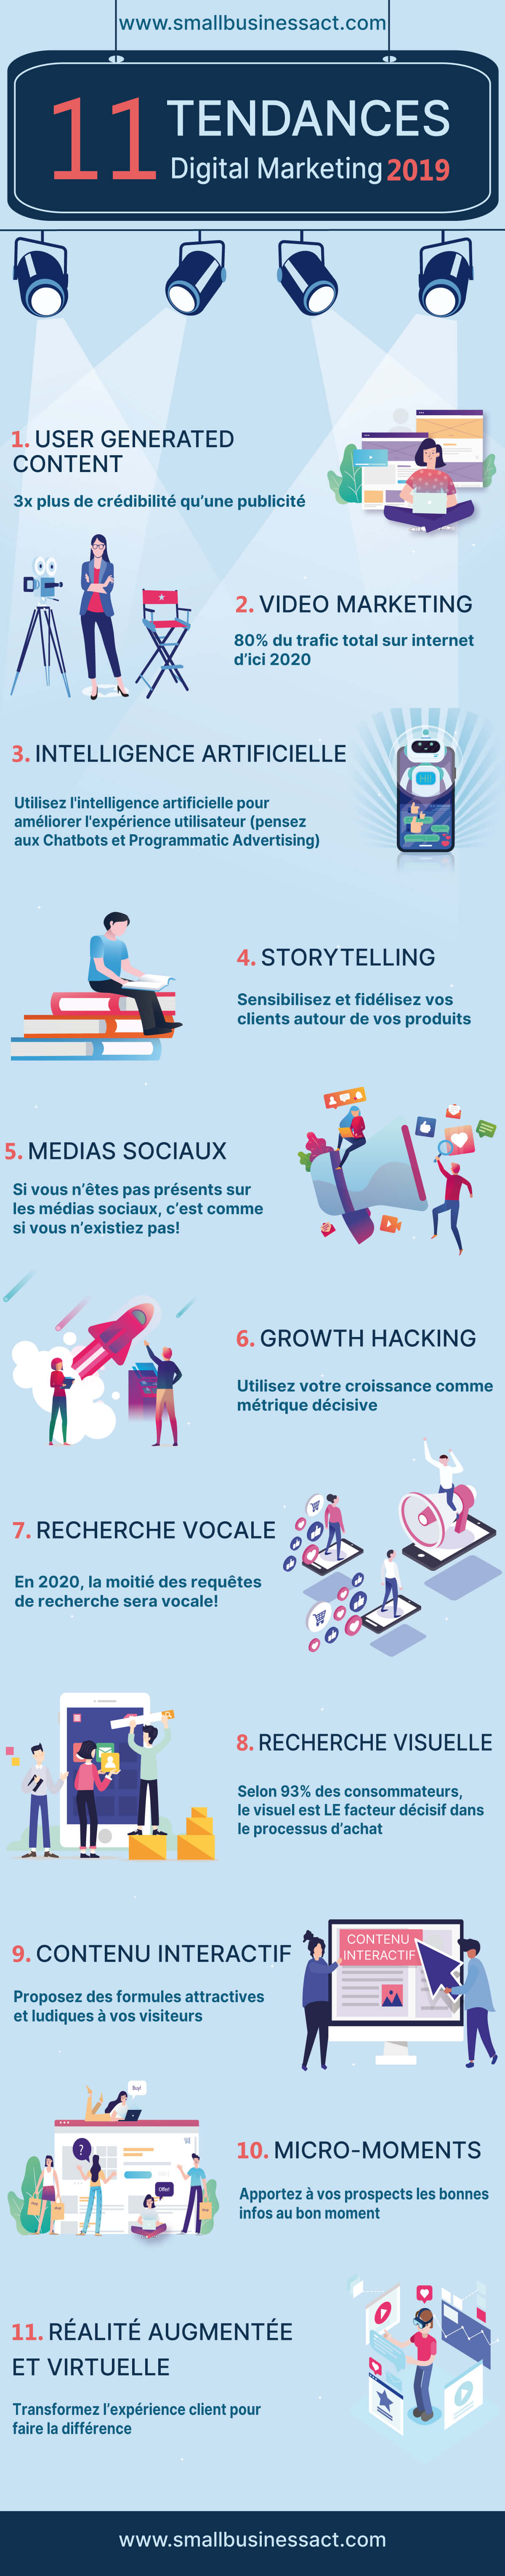 [Infographie] Les 11 tendances du marketing digital qui s'imposent en 2019